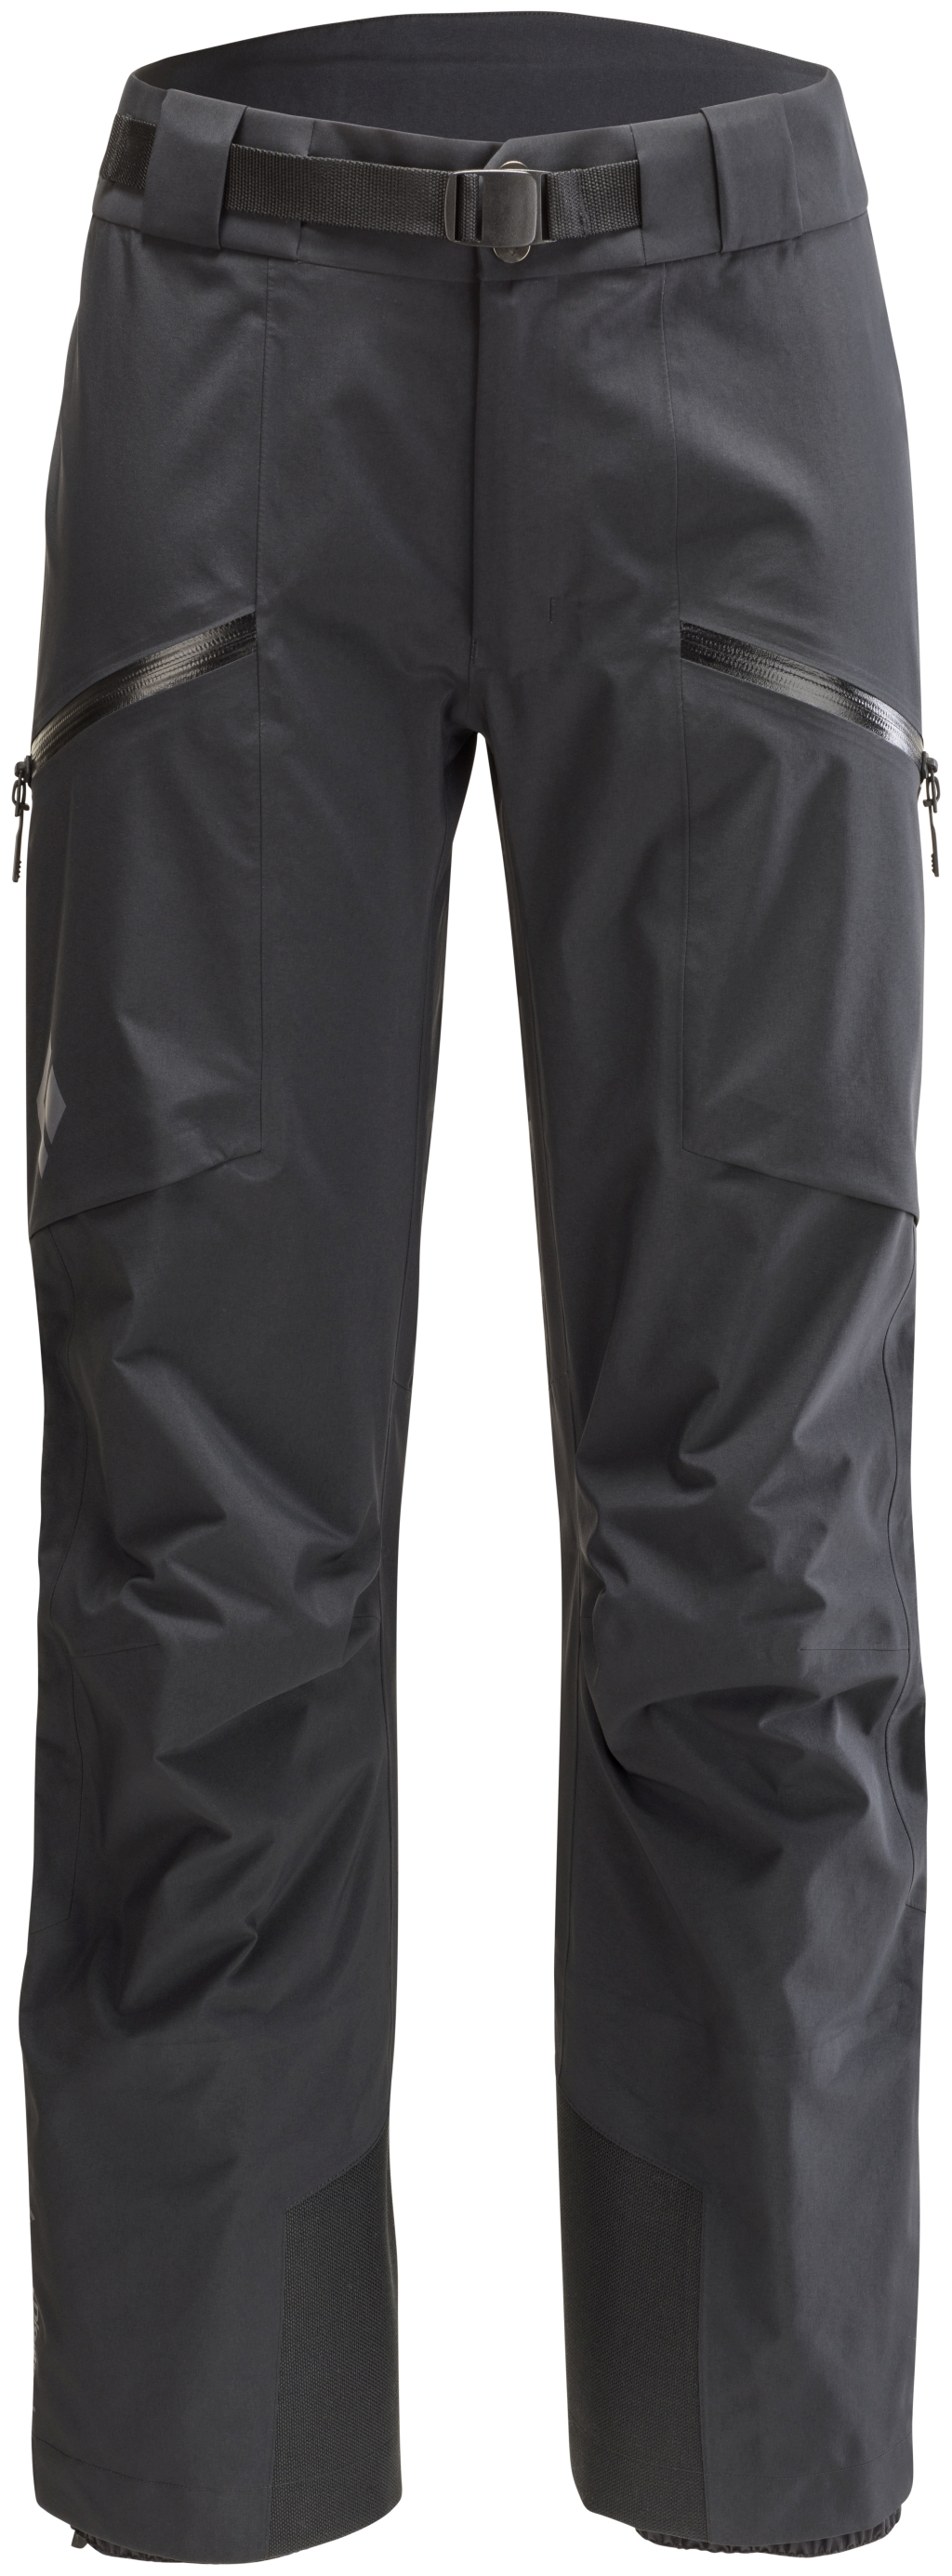 Black Diamond Sharp End Pants Women's Black-30